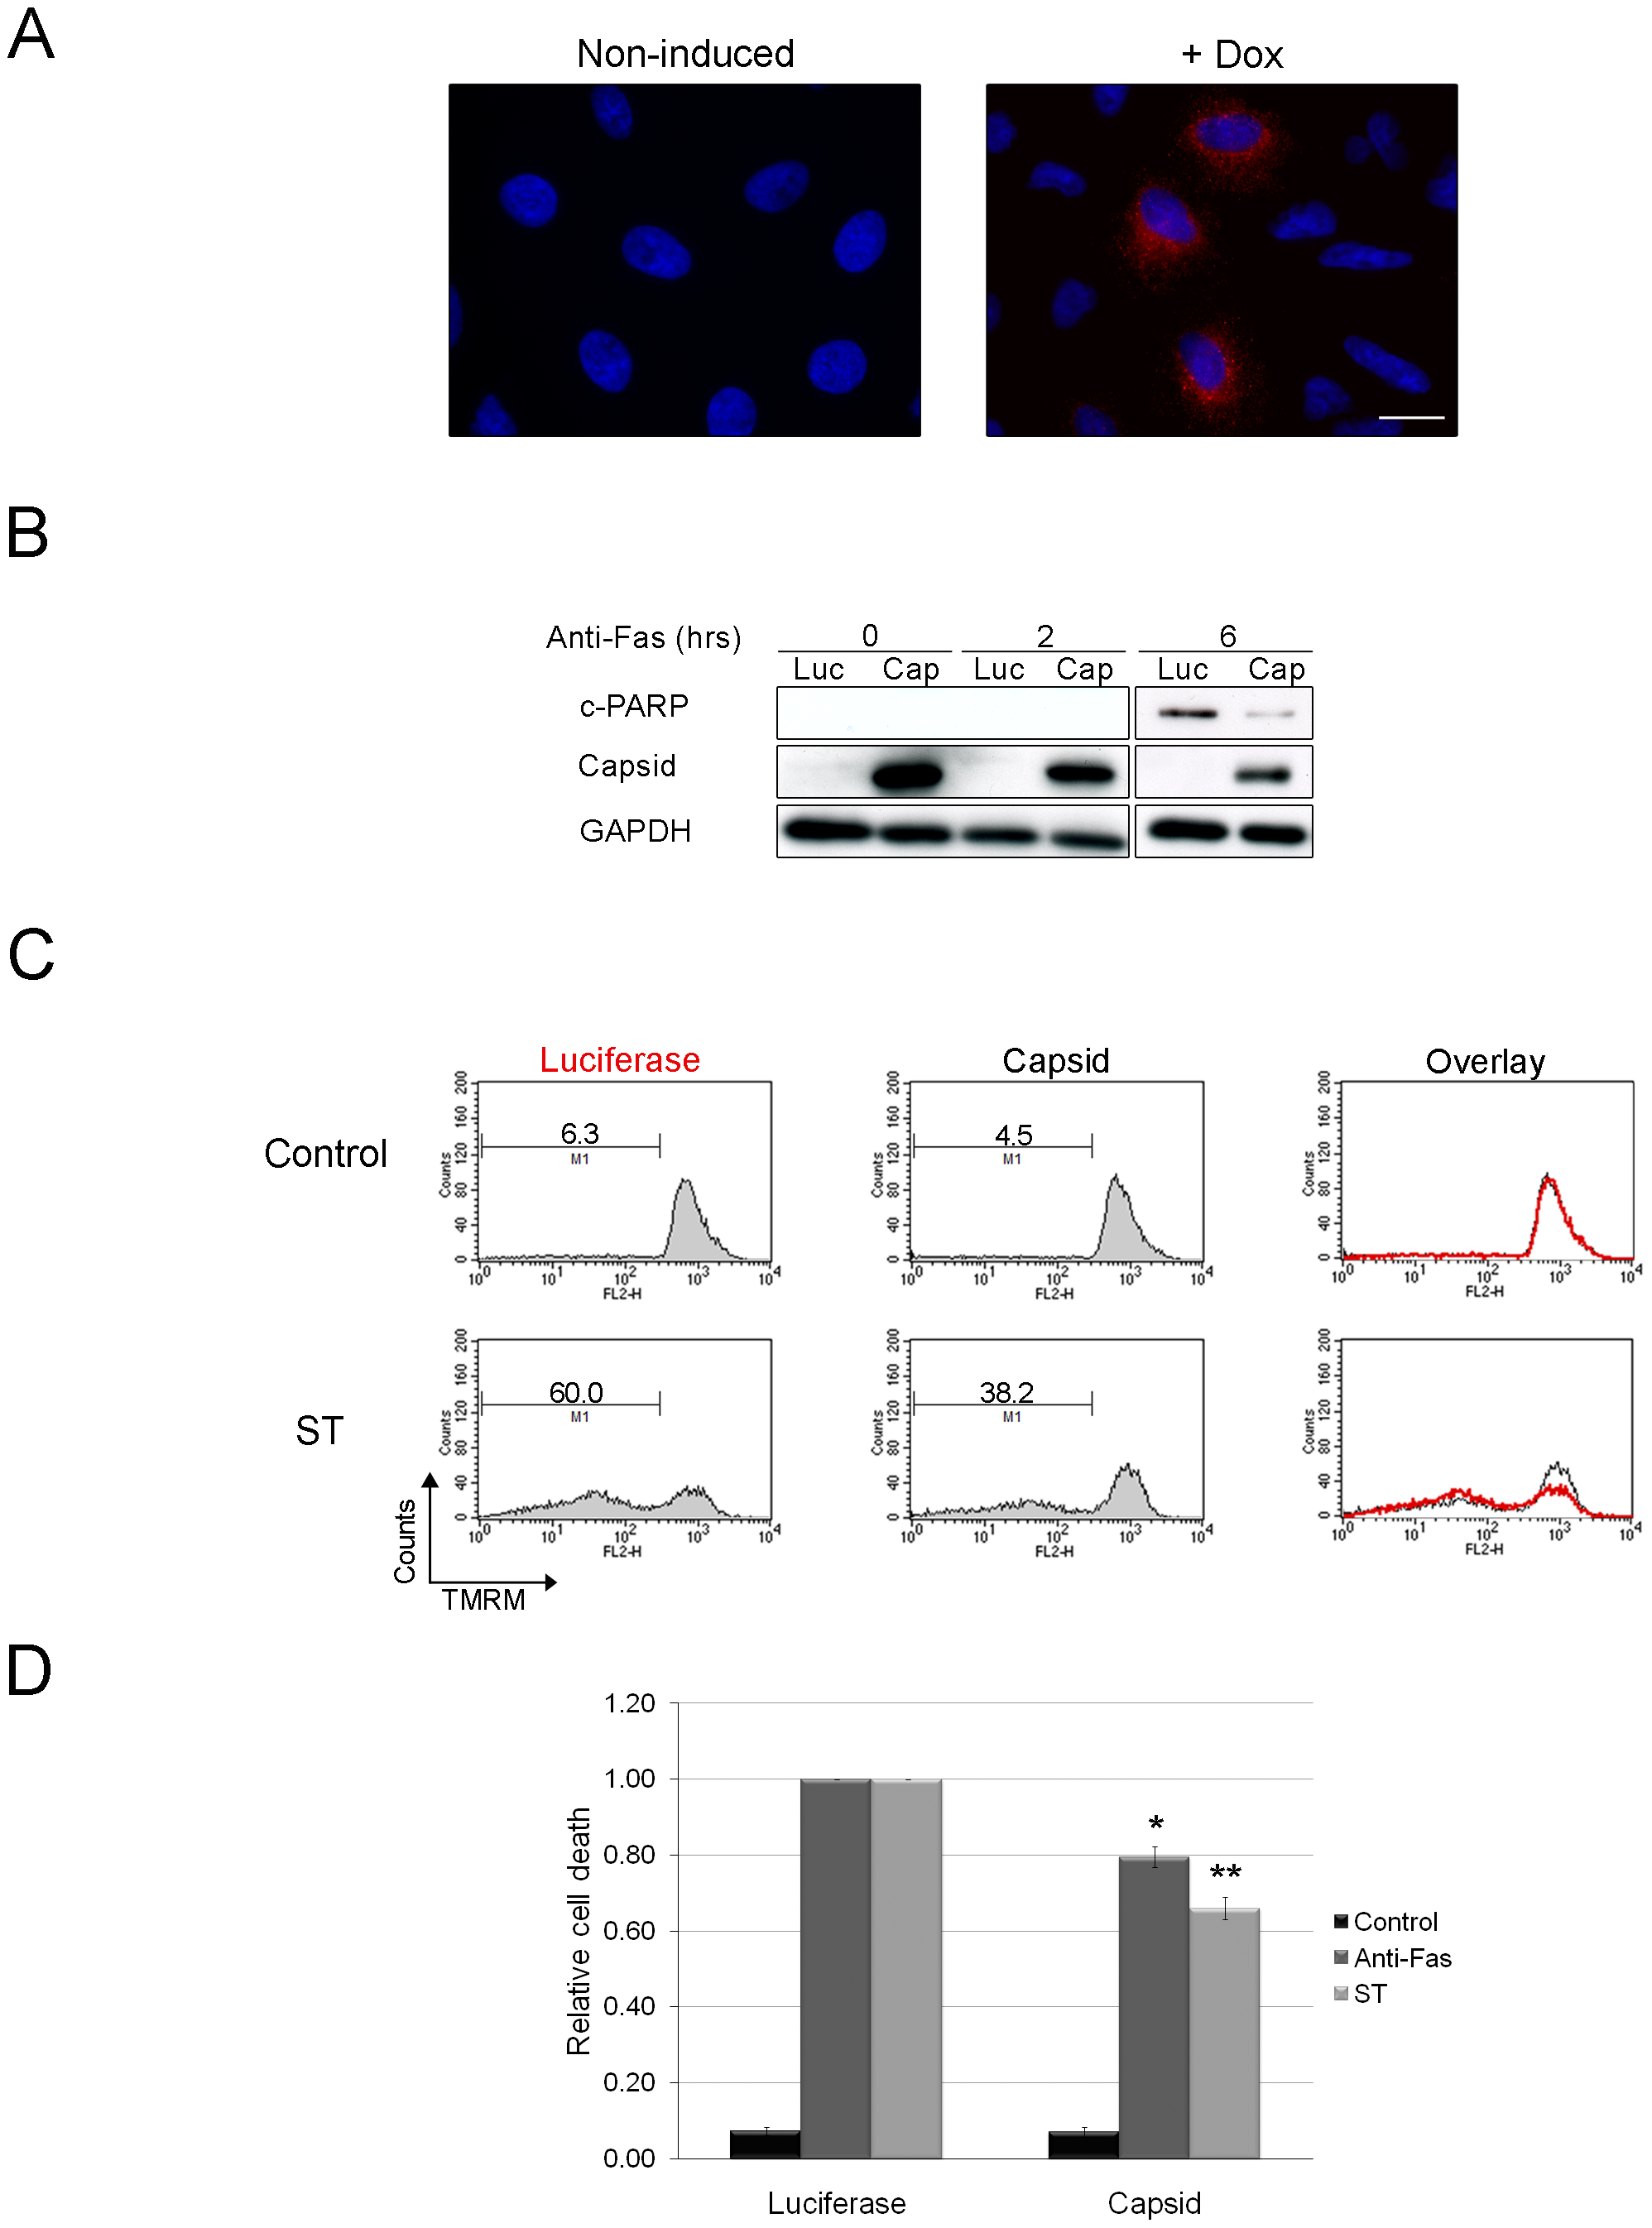 Expression of capsid in stably transduced A549 cells protects against staurosporine- and Fas-induced depolarization of mitochondria and PARP cleavage.